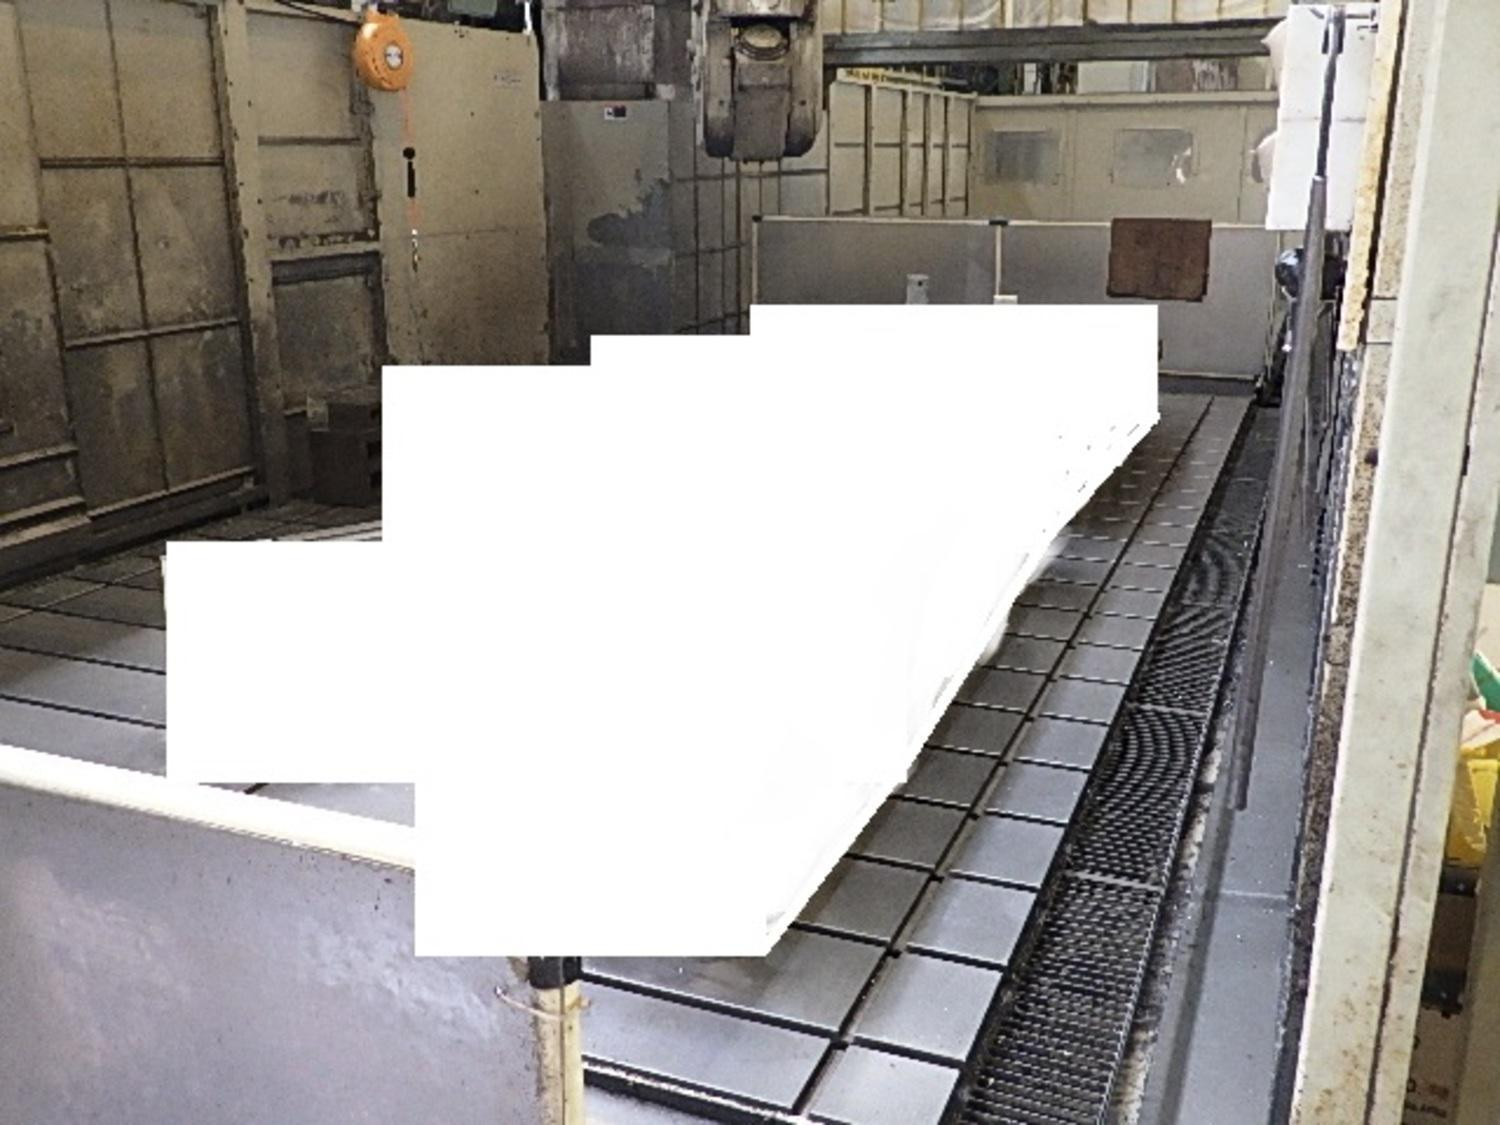 SNK RB-350F CNC 5-Axis Double Column Vertical Machining Center